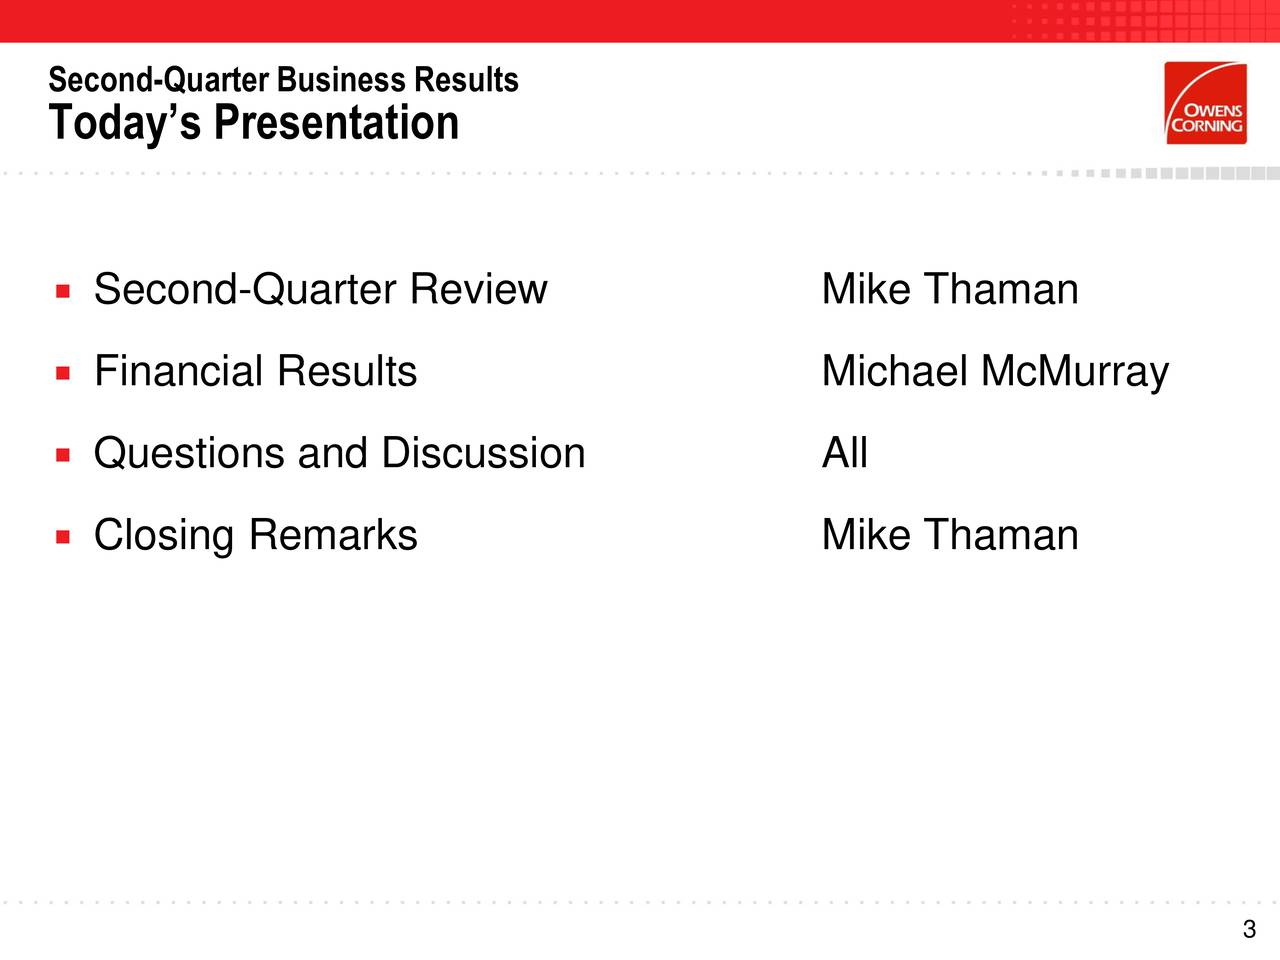 Todays Presentation Second-Quarter Review Mike Thaman Financial Results Michael McMurray Questions and Discussion All Closing Remarks Mike Thaman 3